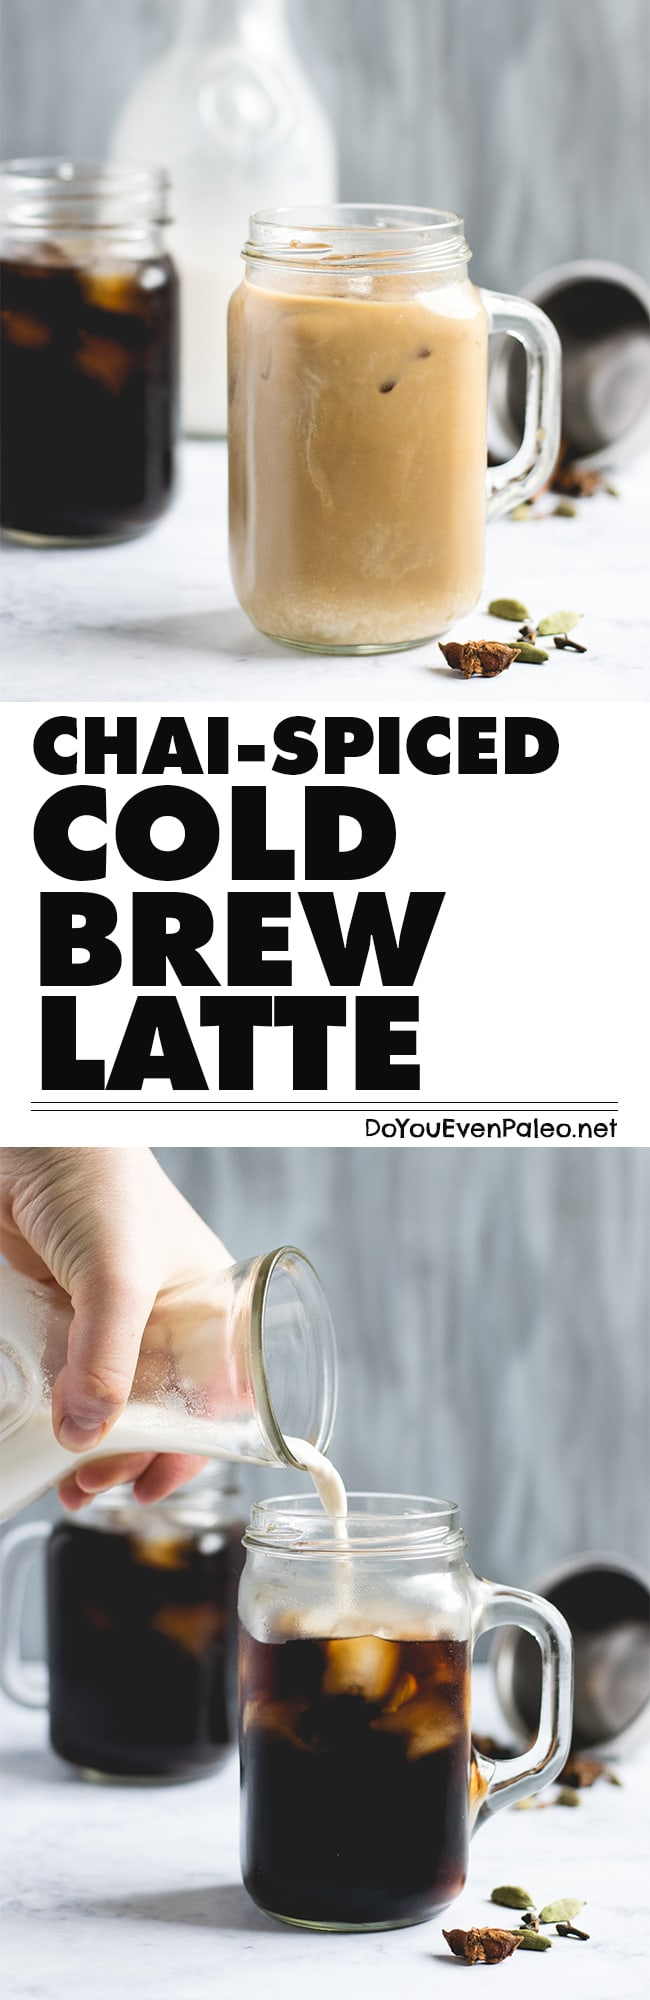 Chai-spiced cold brew latte recipe